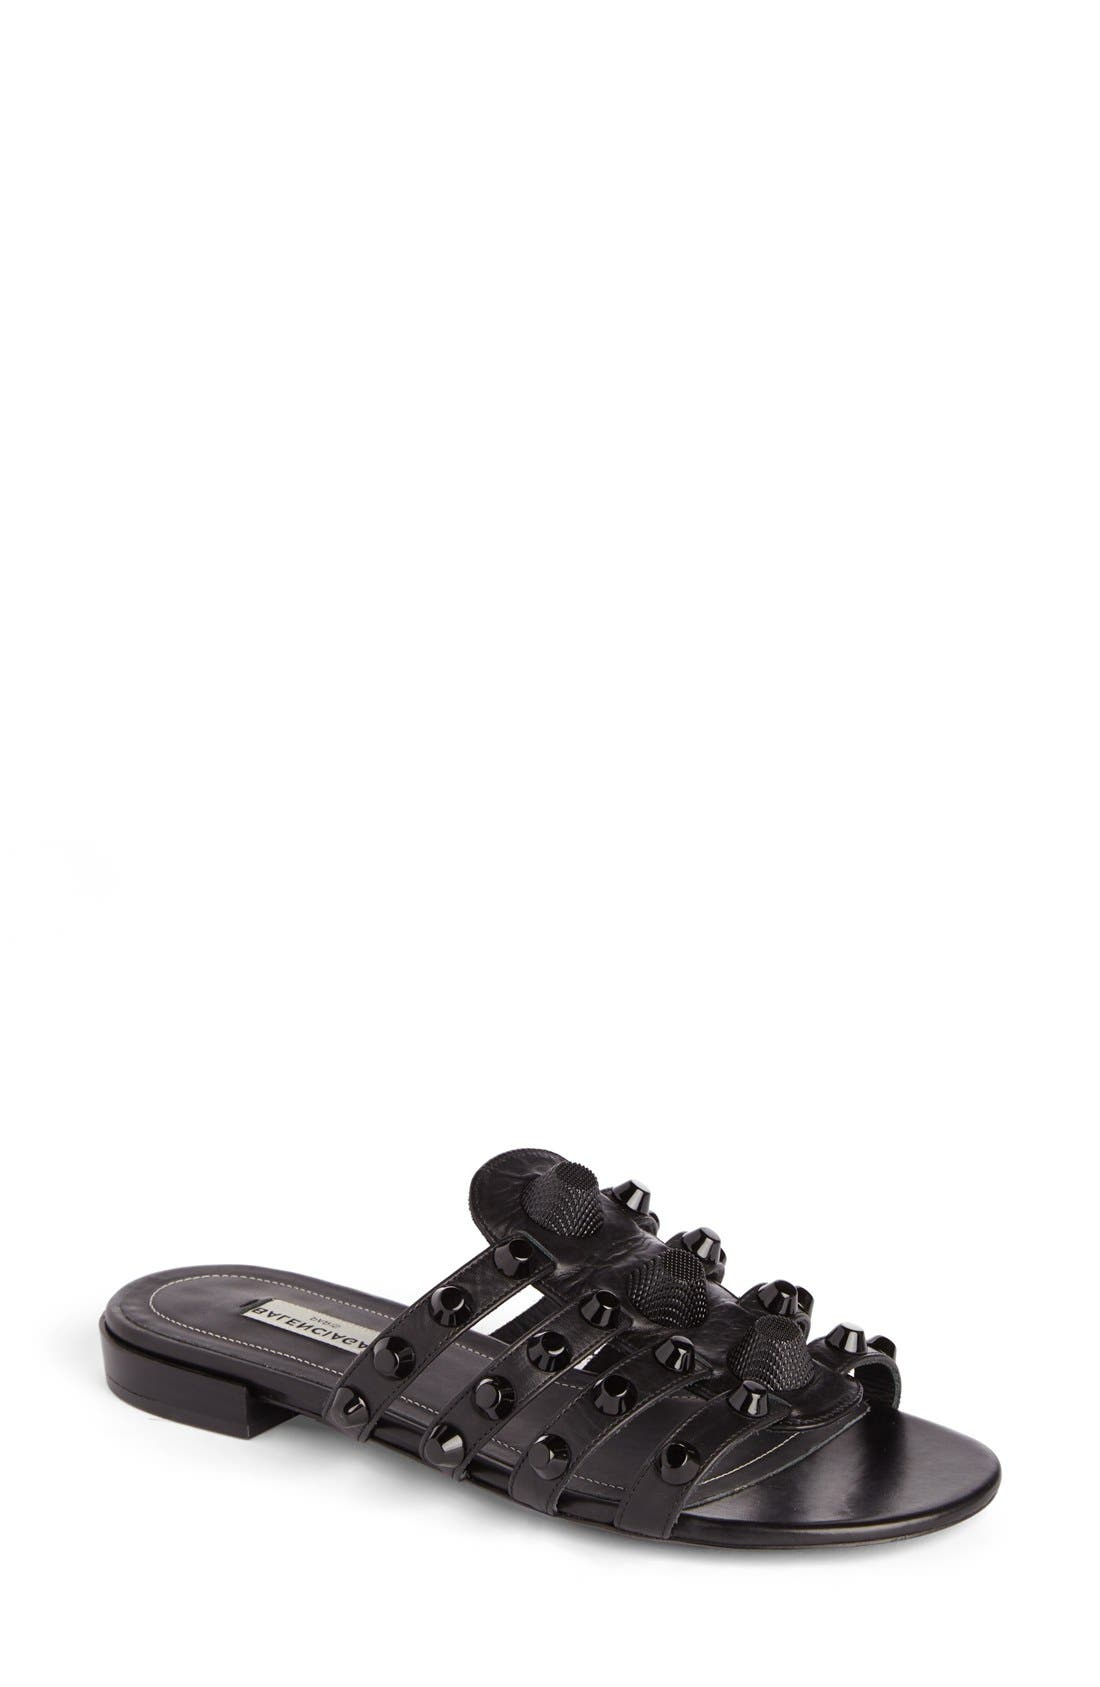 BALENCIAGA Studded Slip-On Sandal